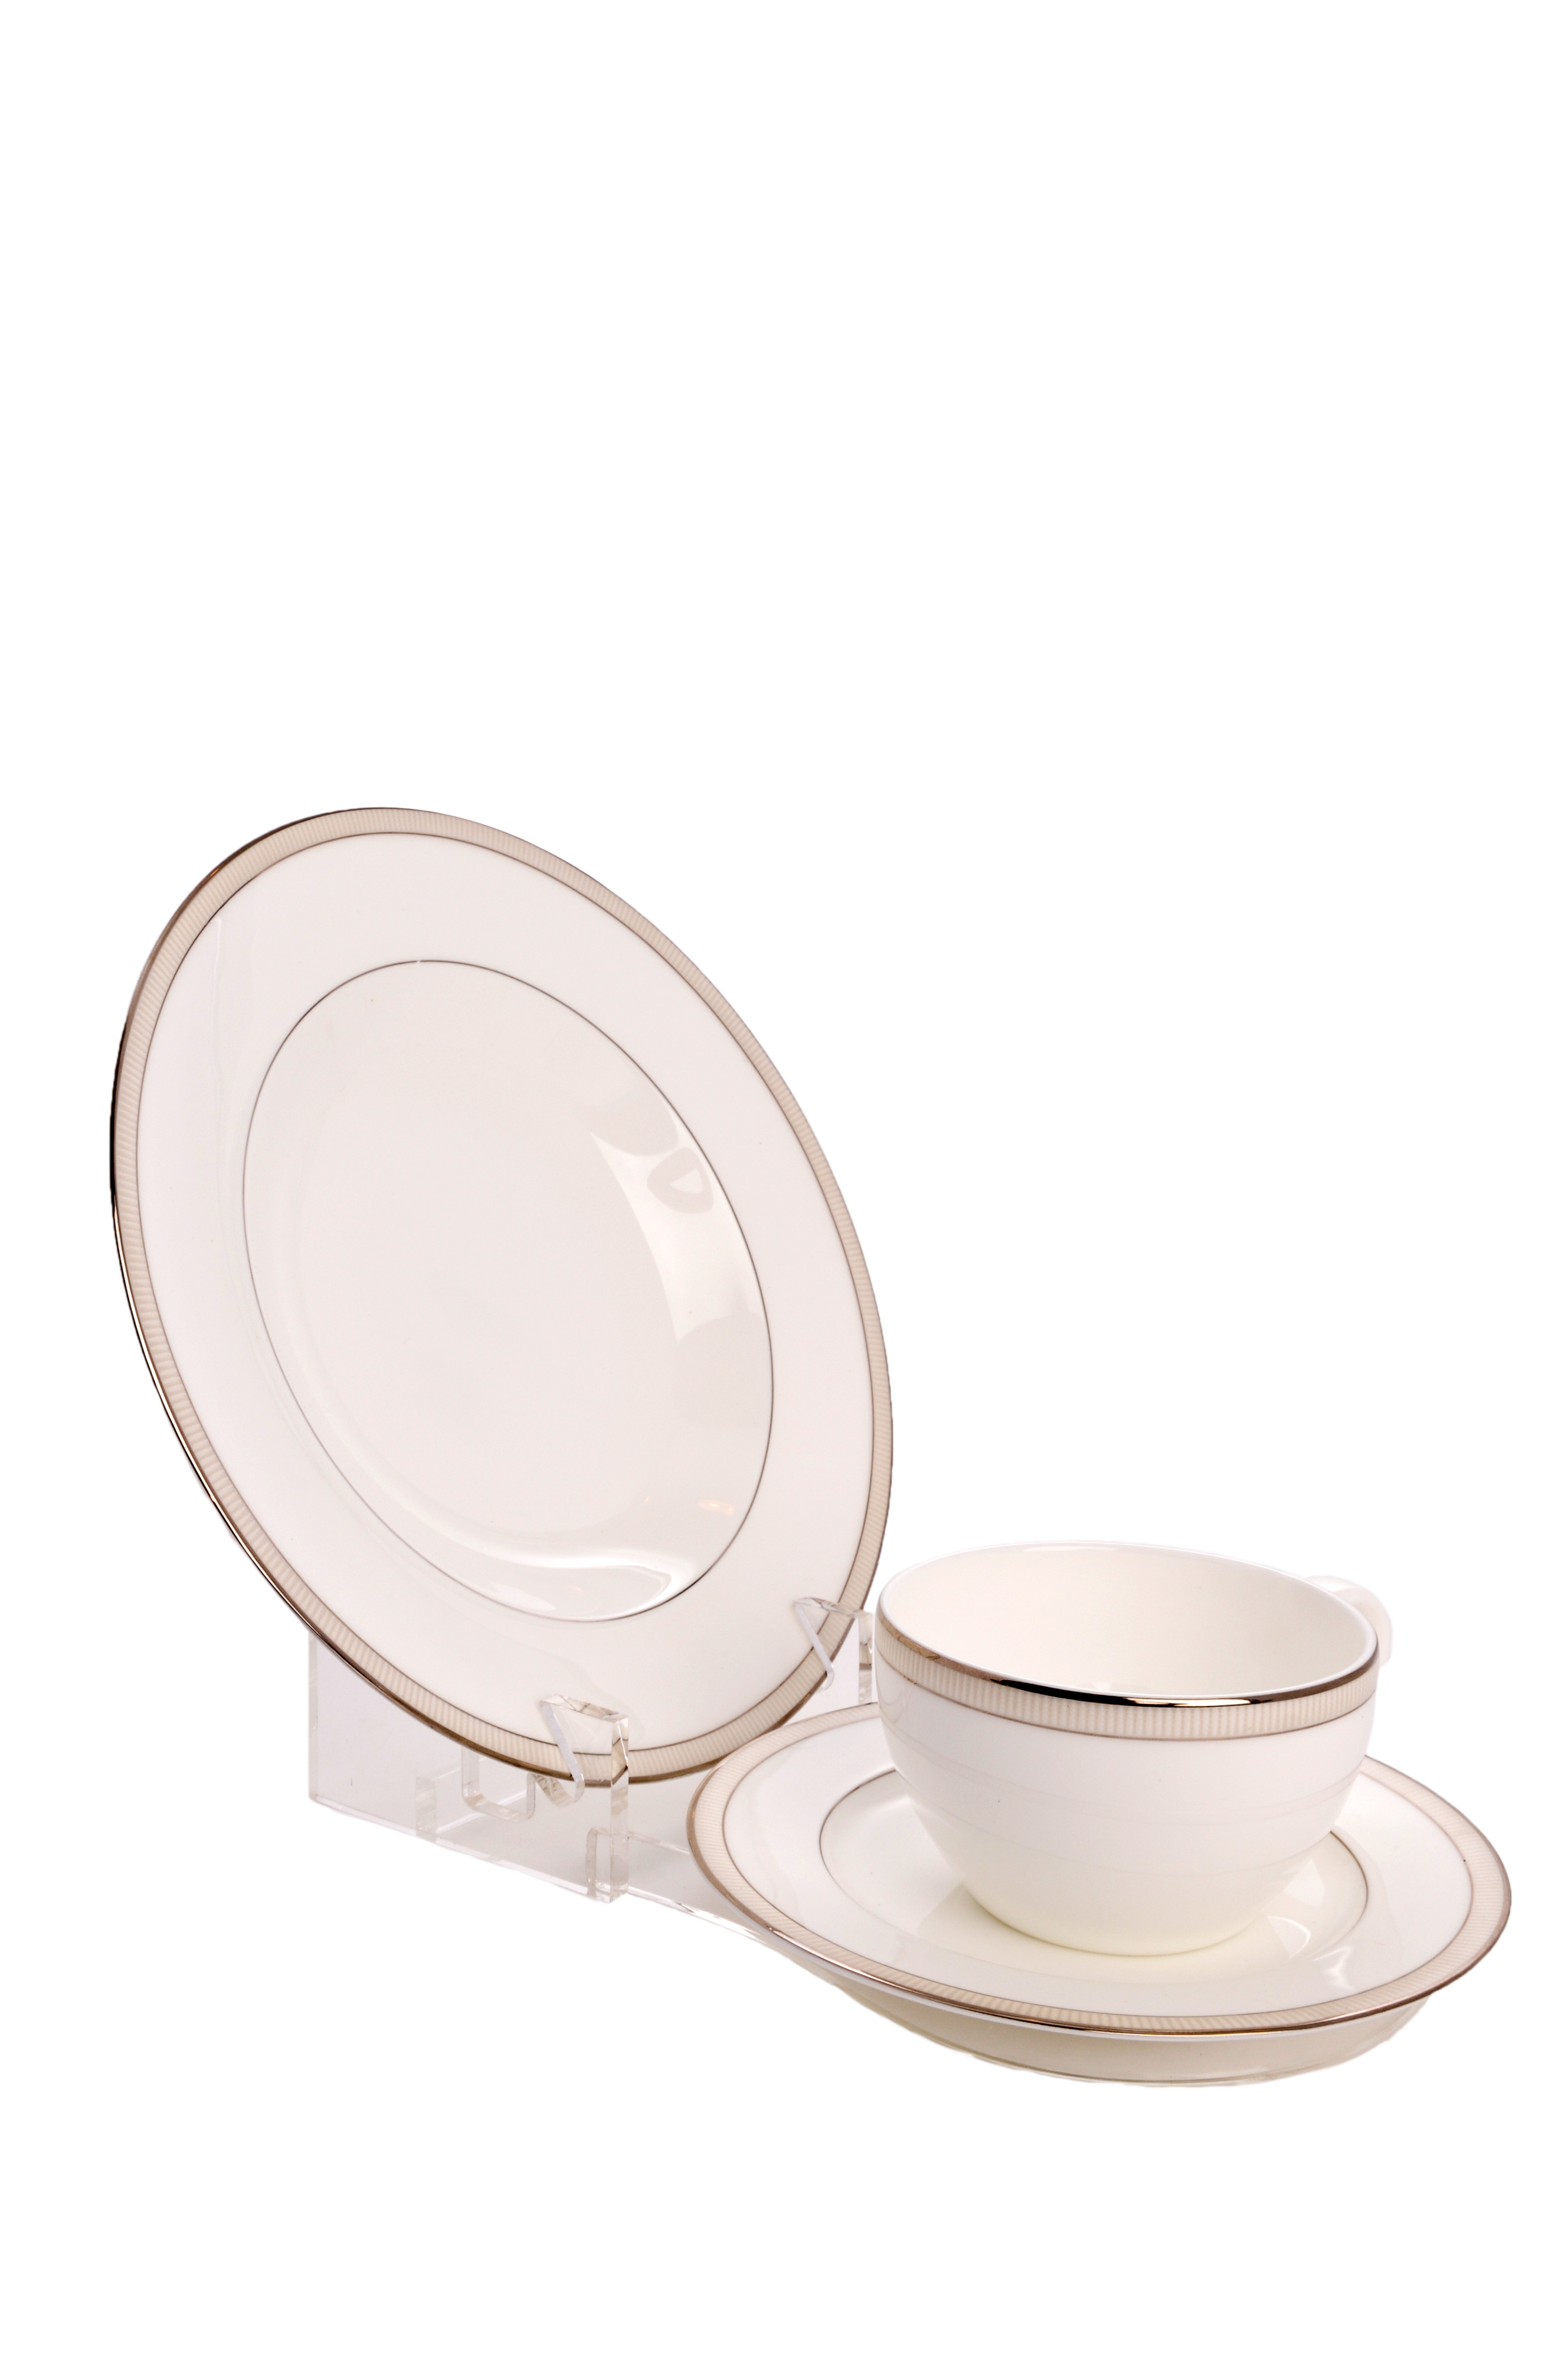 Clear Acrylic 3 Piece Dinnerware / China / Place Setting Display Stand (Item #693)  sc 1 st  THB Products LLC & Clear Acrylic 3 Piece Dinnerware / China / Place Setting Display ...